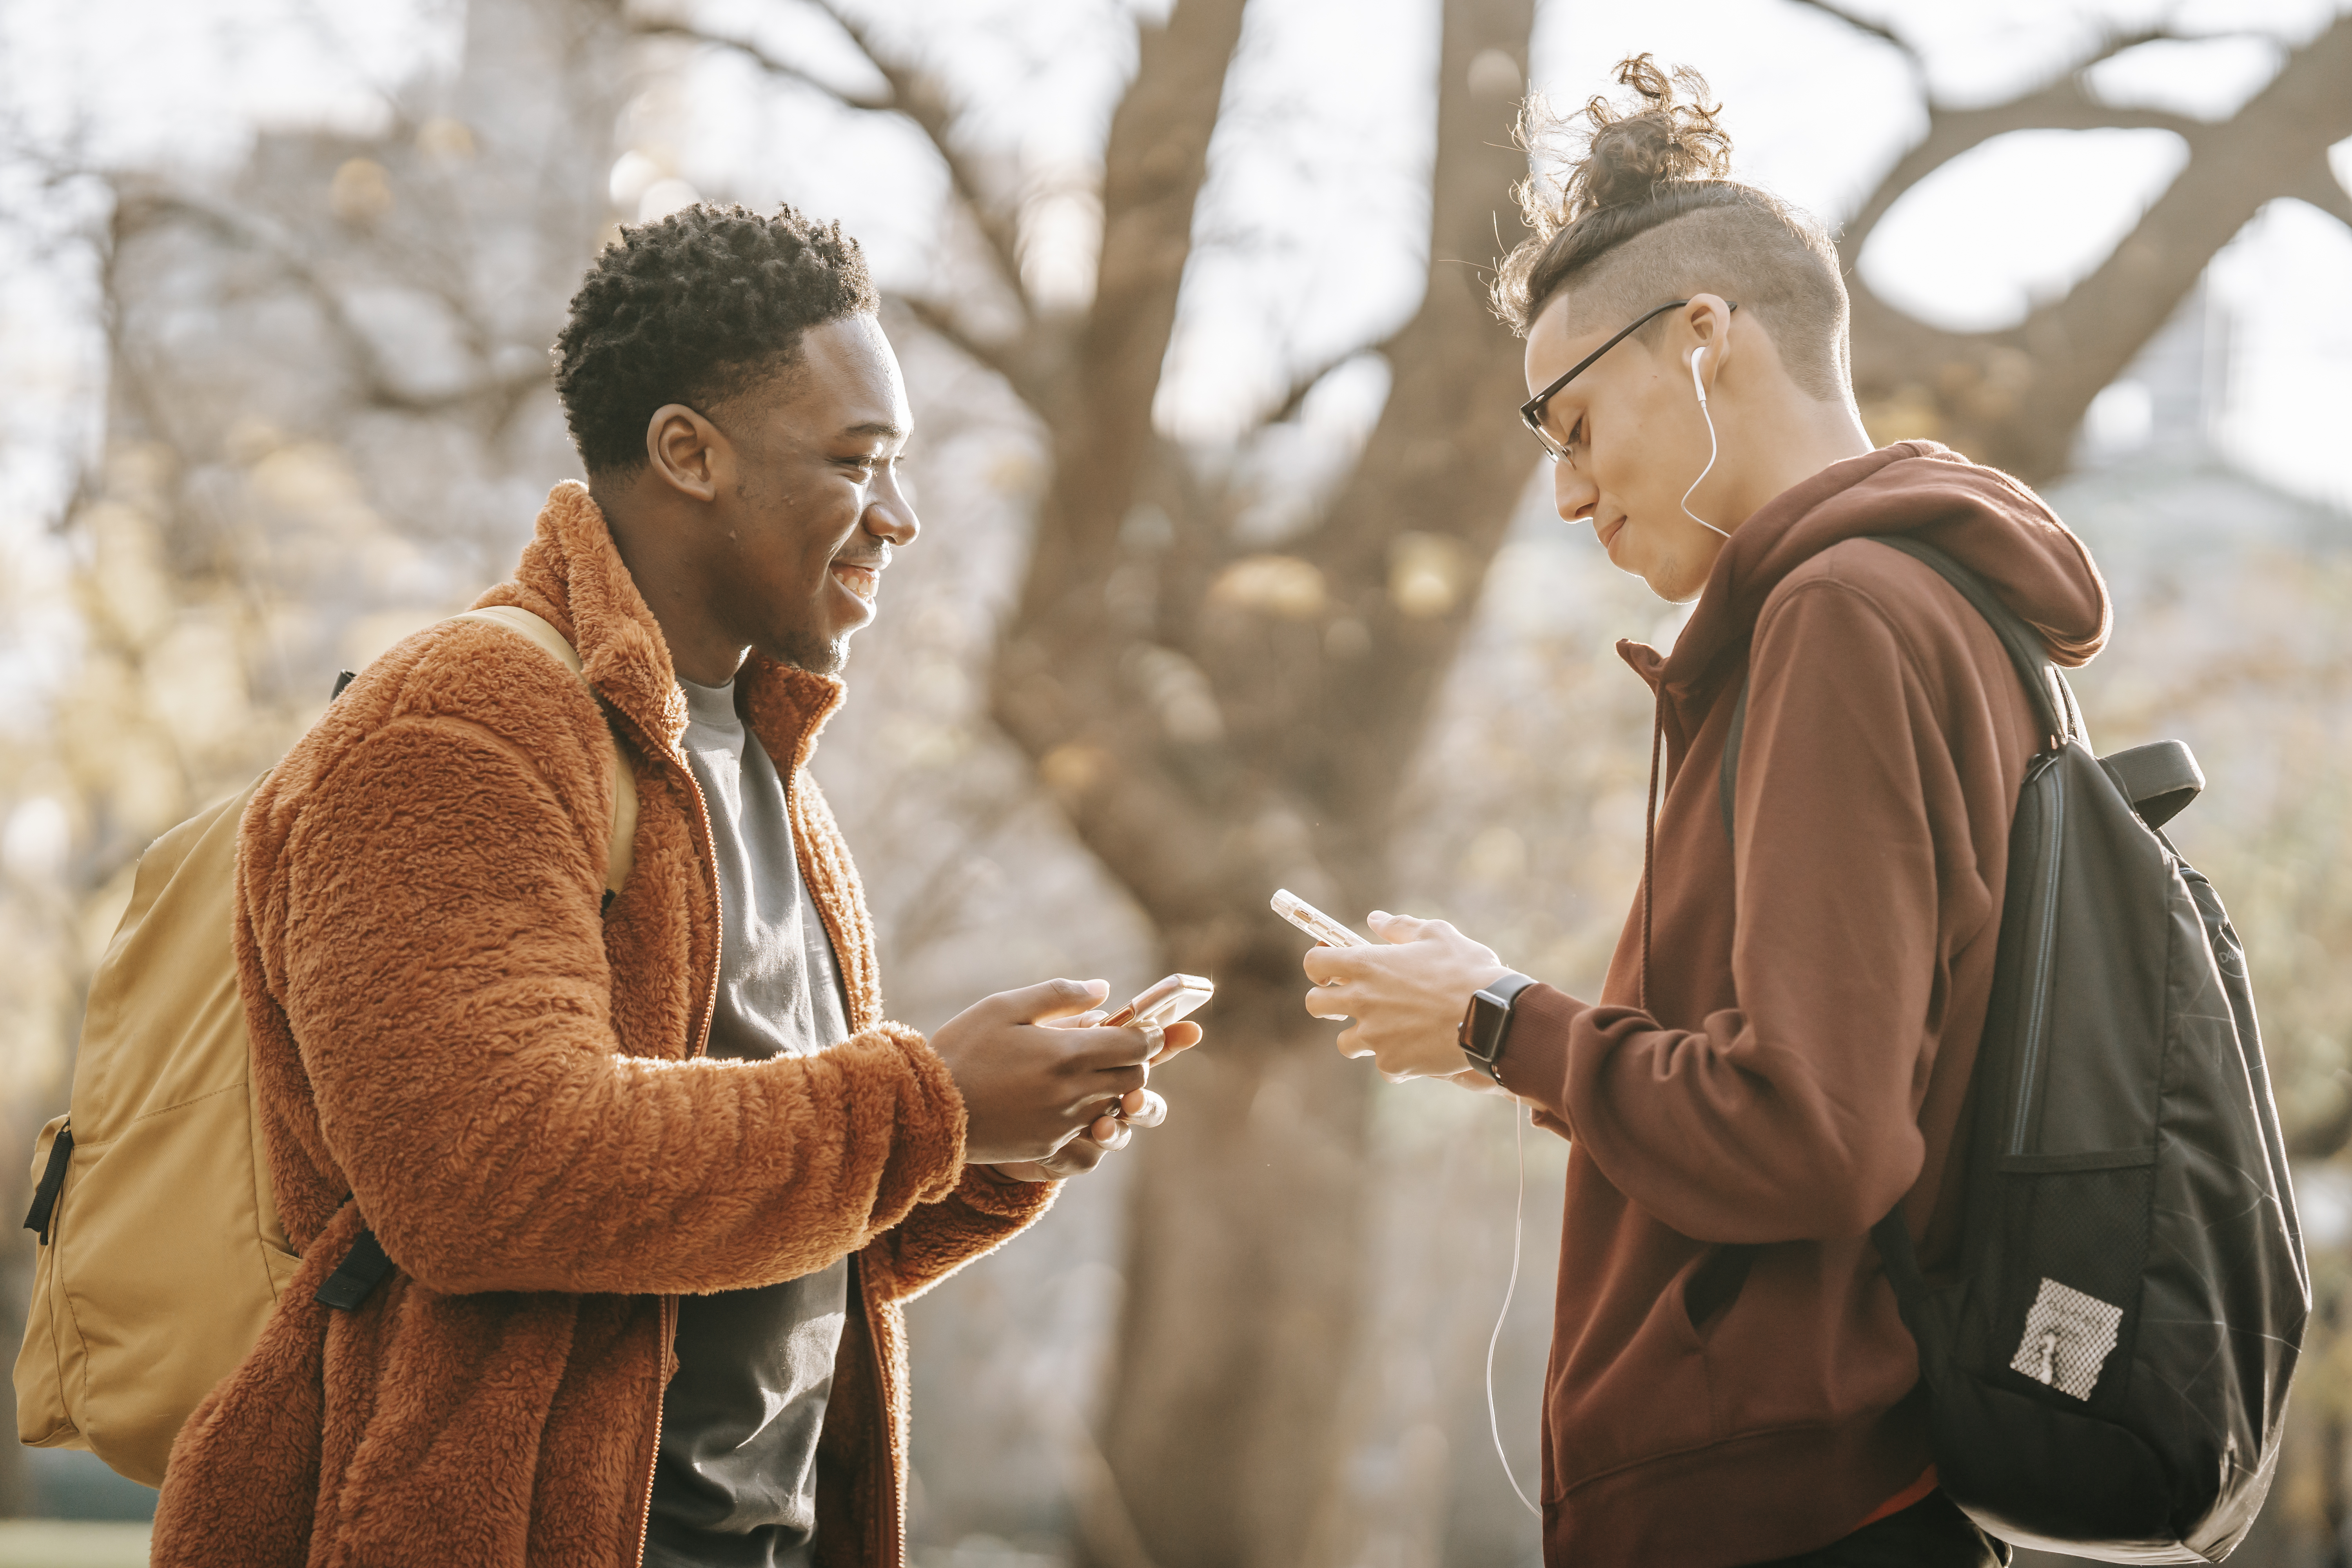 smiling diverse male guys browsing modern cellphones against blurred trees